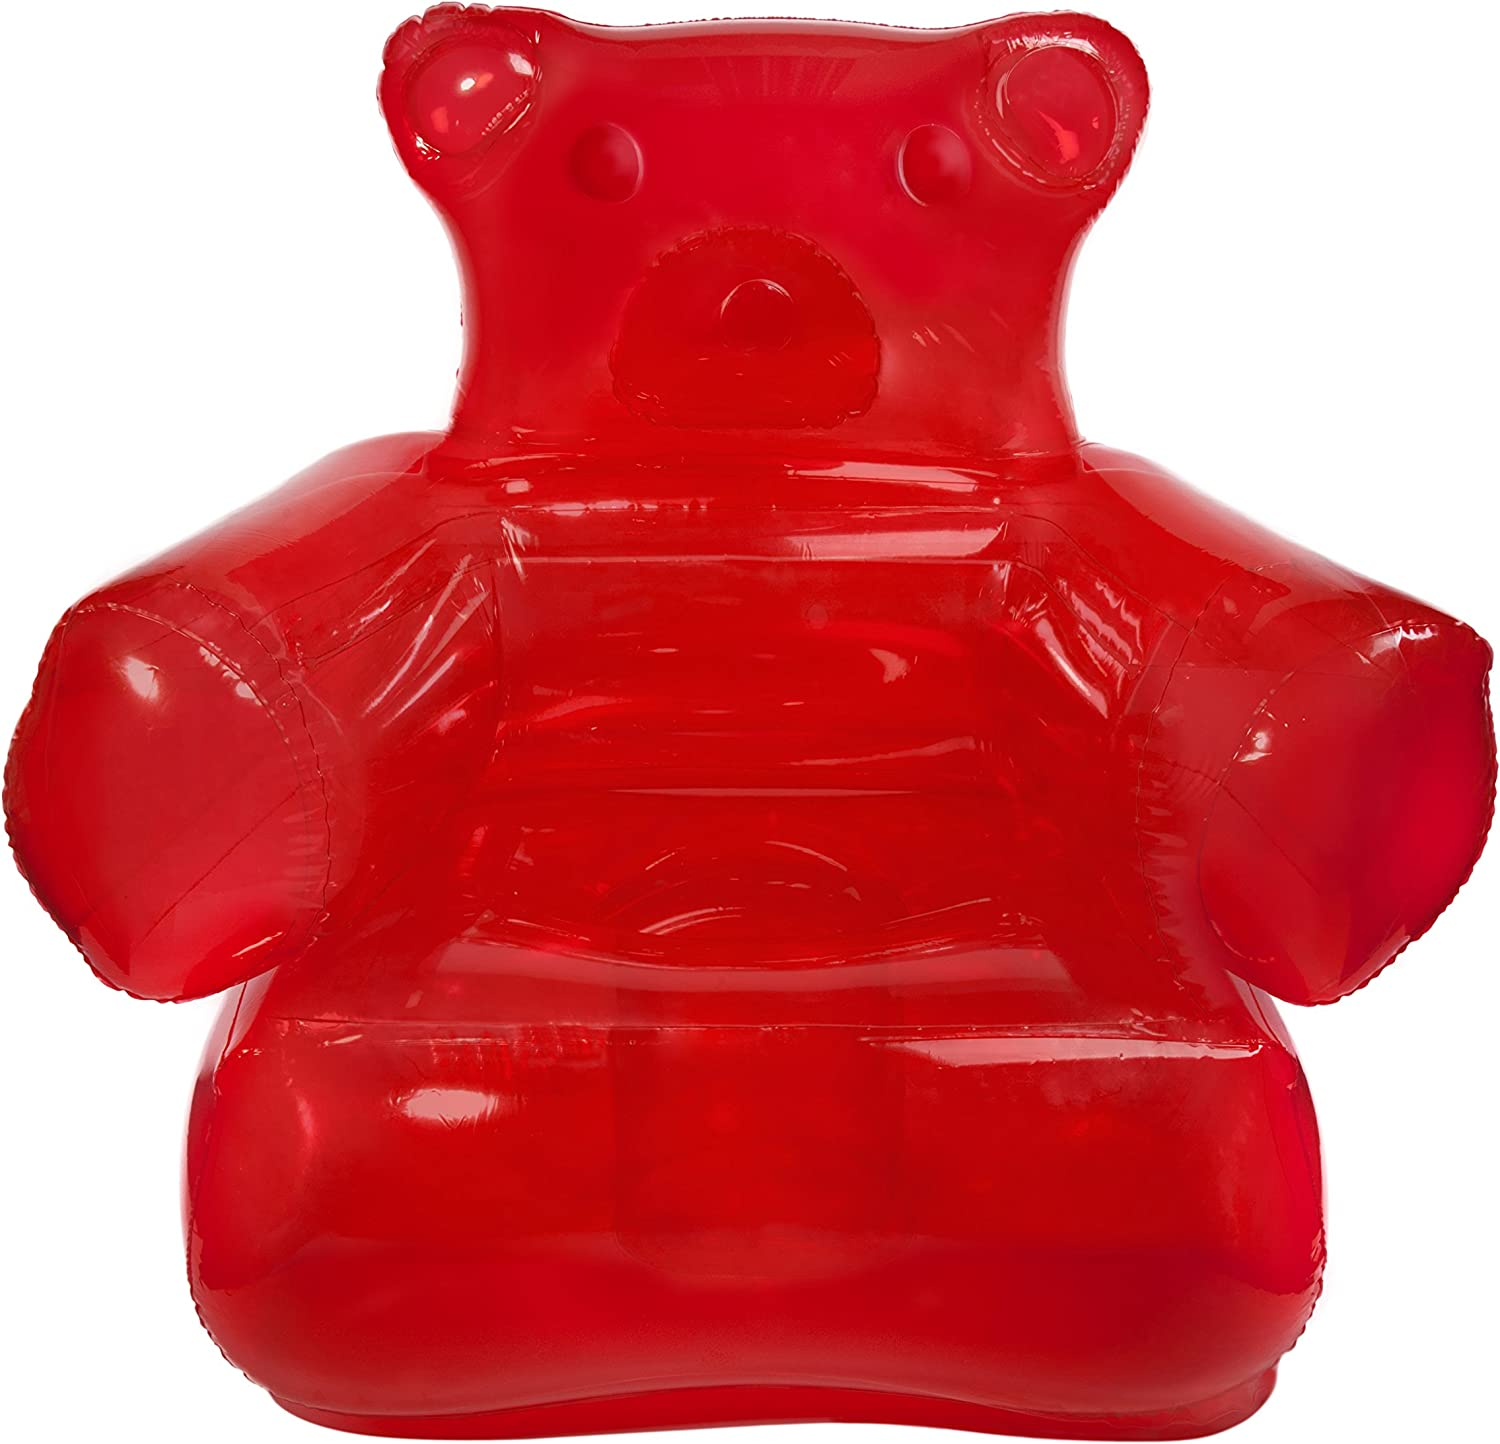 Red Inflatable Gummy Bear Chair Delicious Looking Blow Up Chair SNInc.